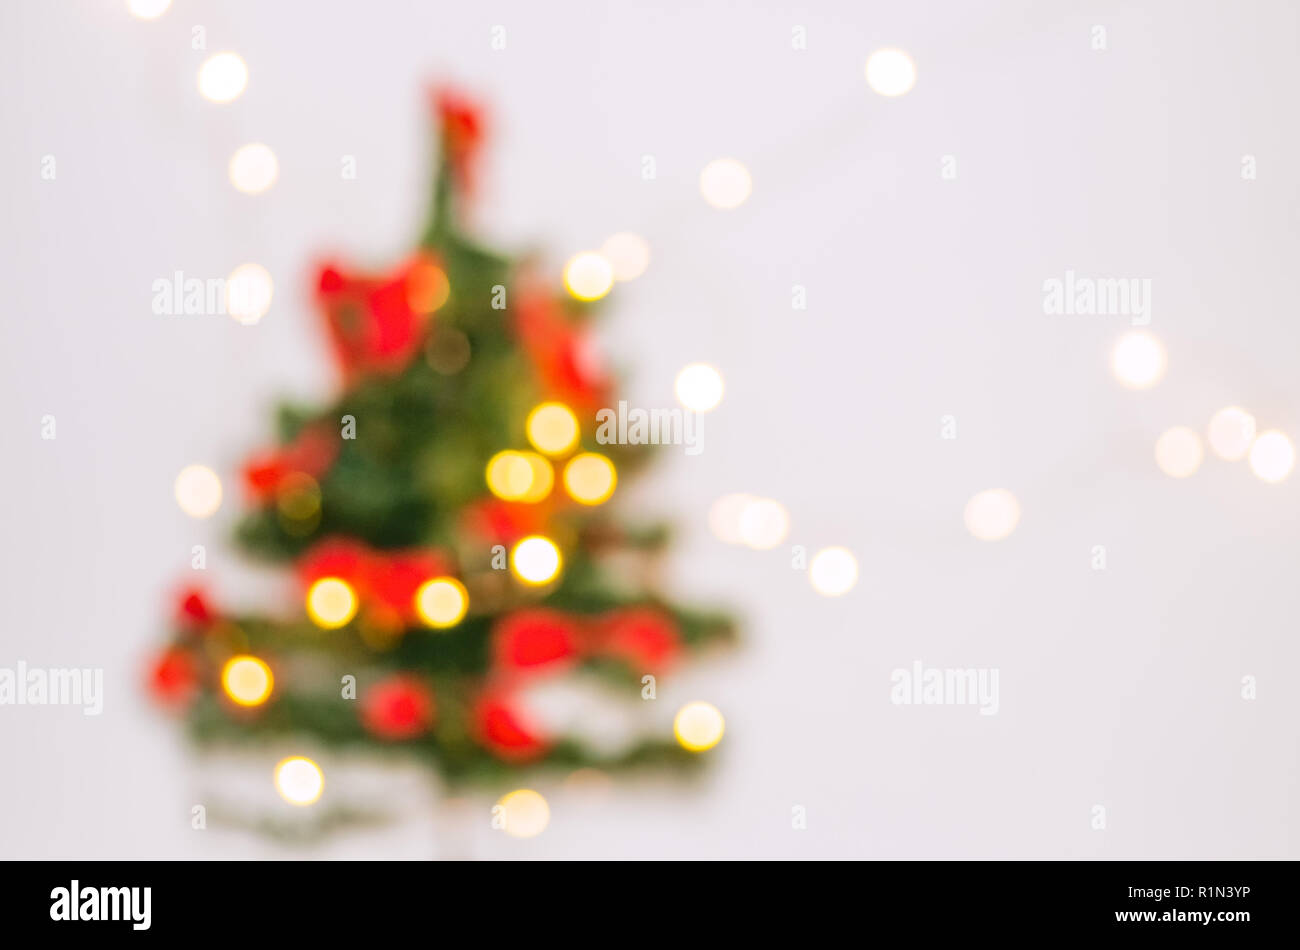 Blurred Background Christmas Tree On A White Background Garland On The Wall Christmas Tree In A White Room For Christmas Stock Photo Alamy